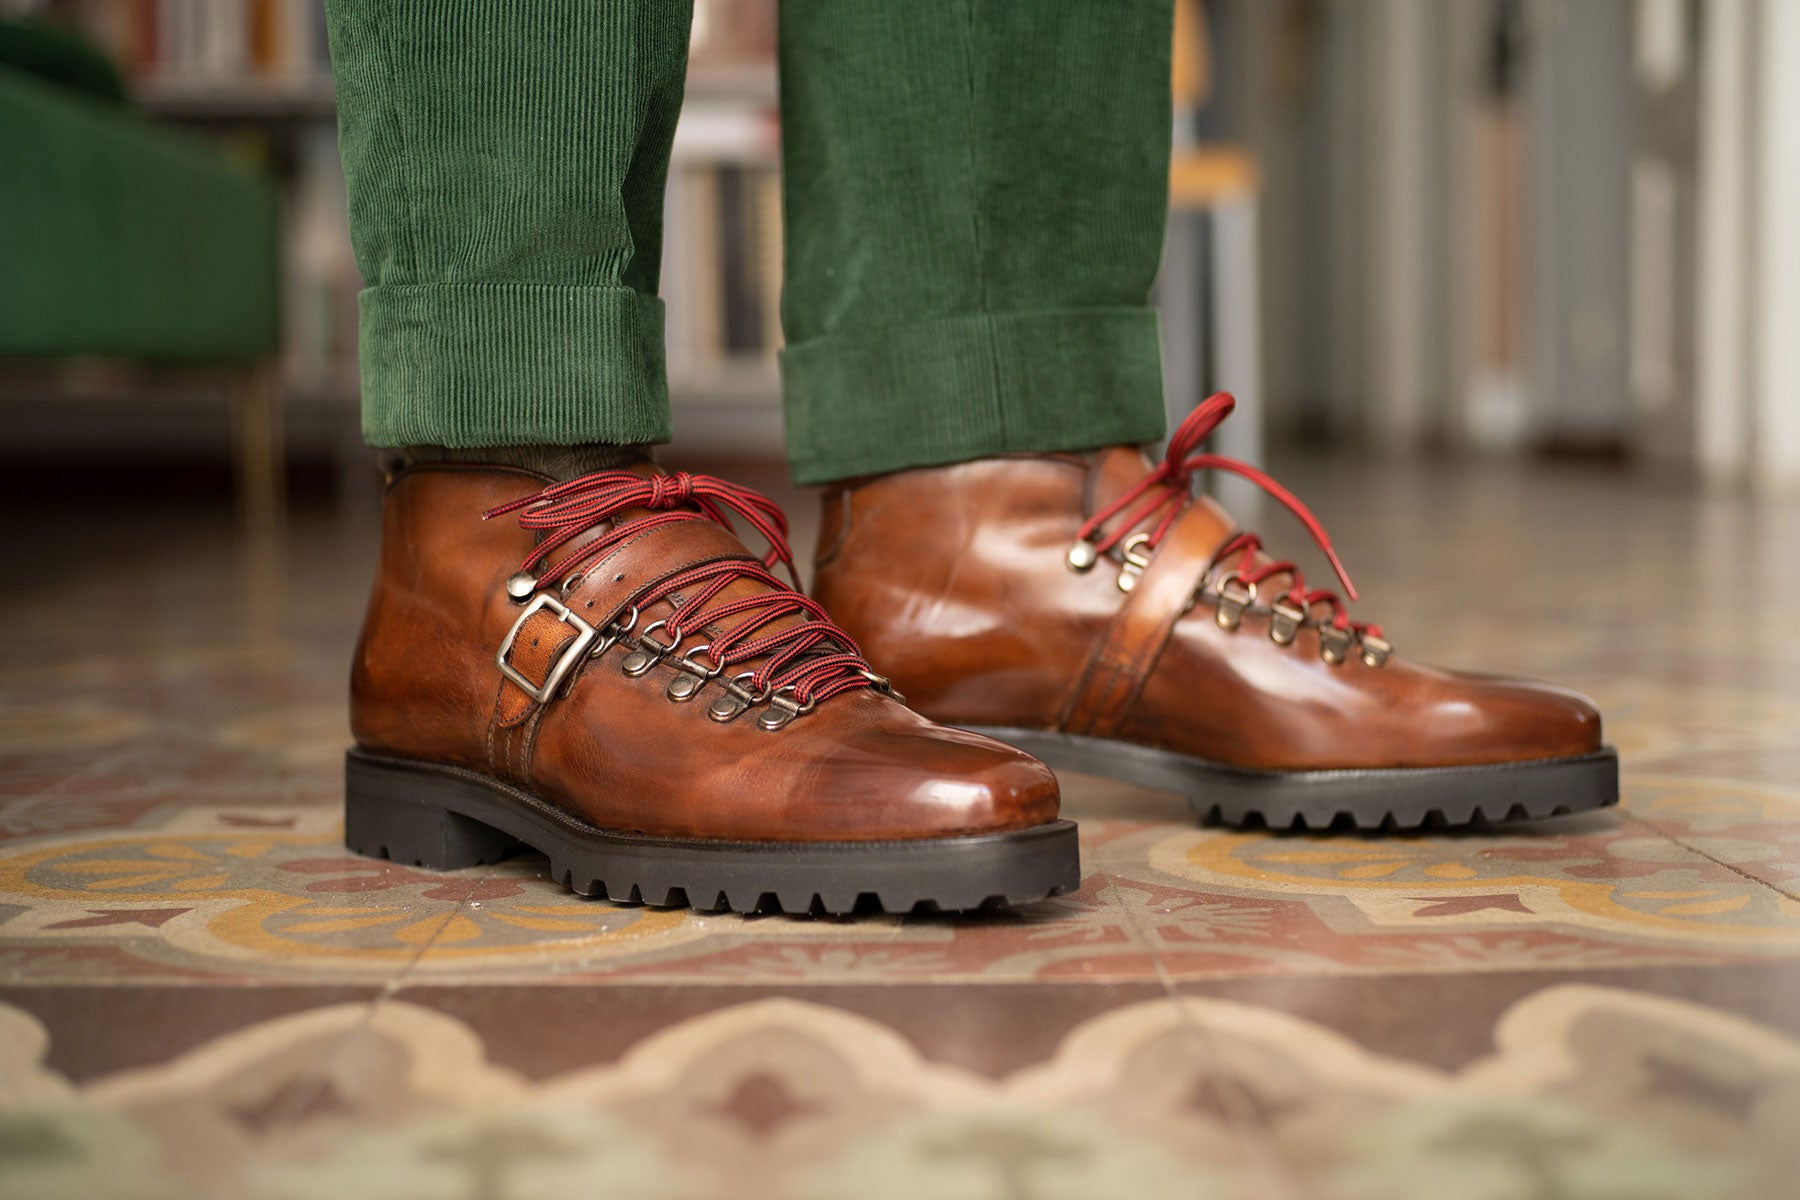 Borcego Mountain Boot by Norman Vilalta Bespoke Shoemakers